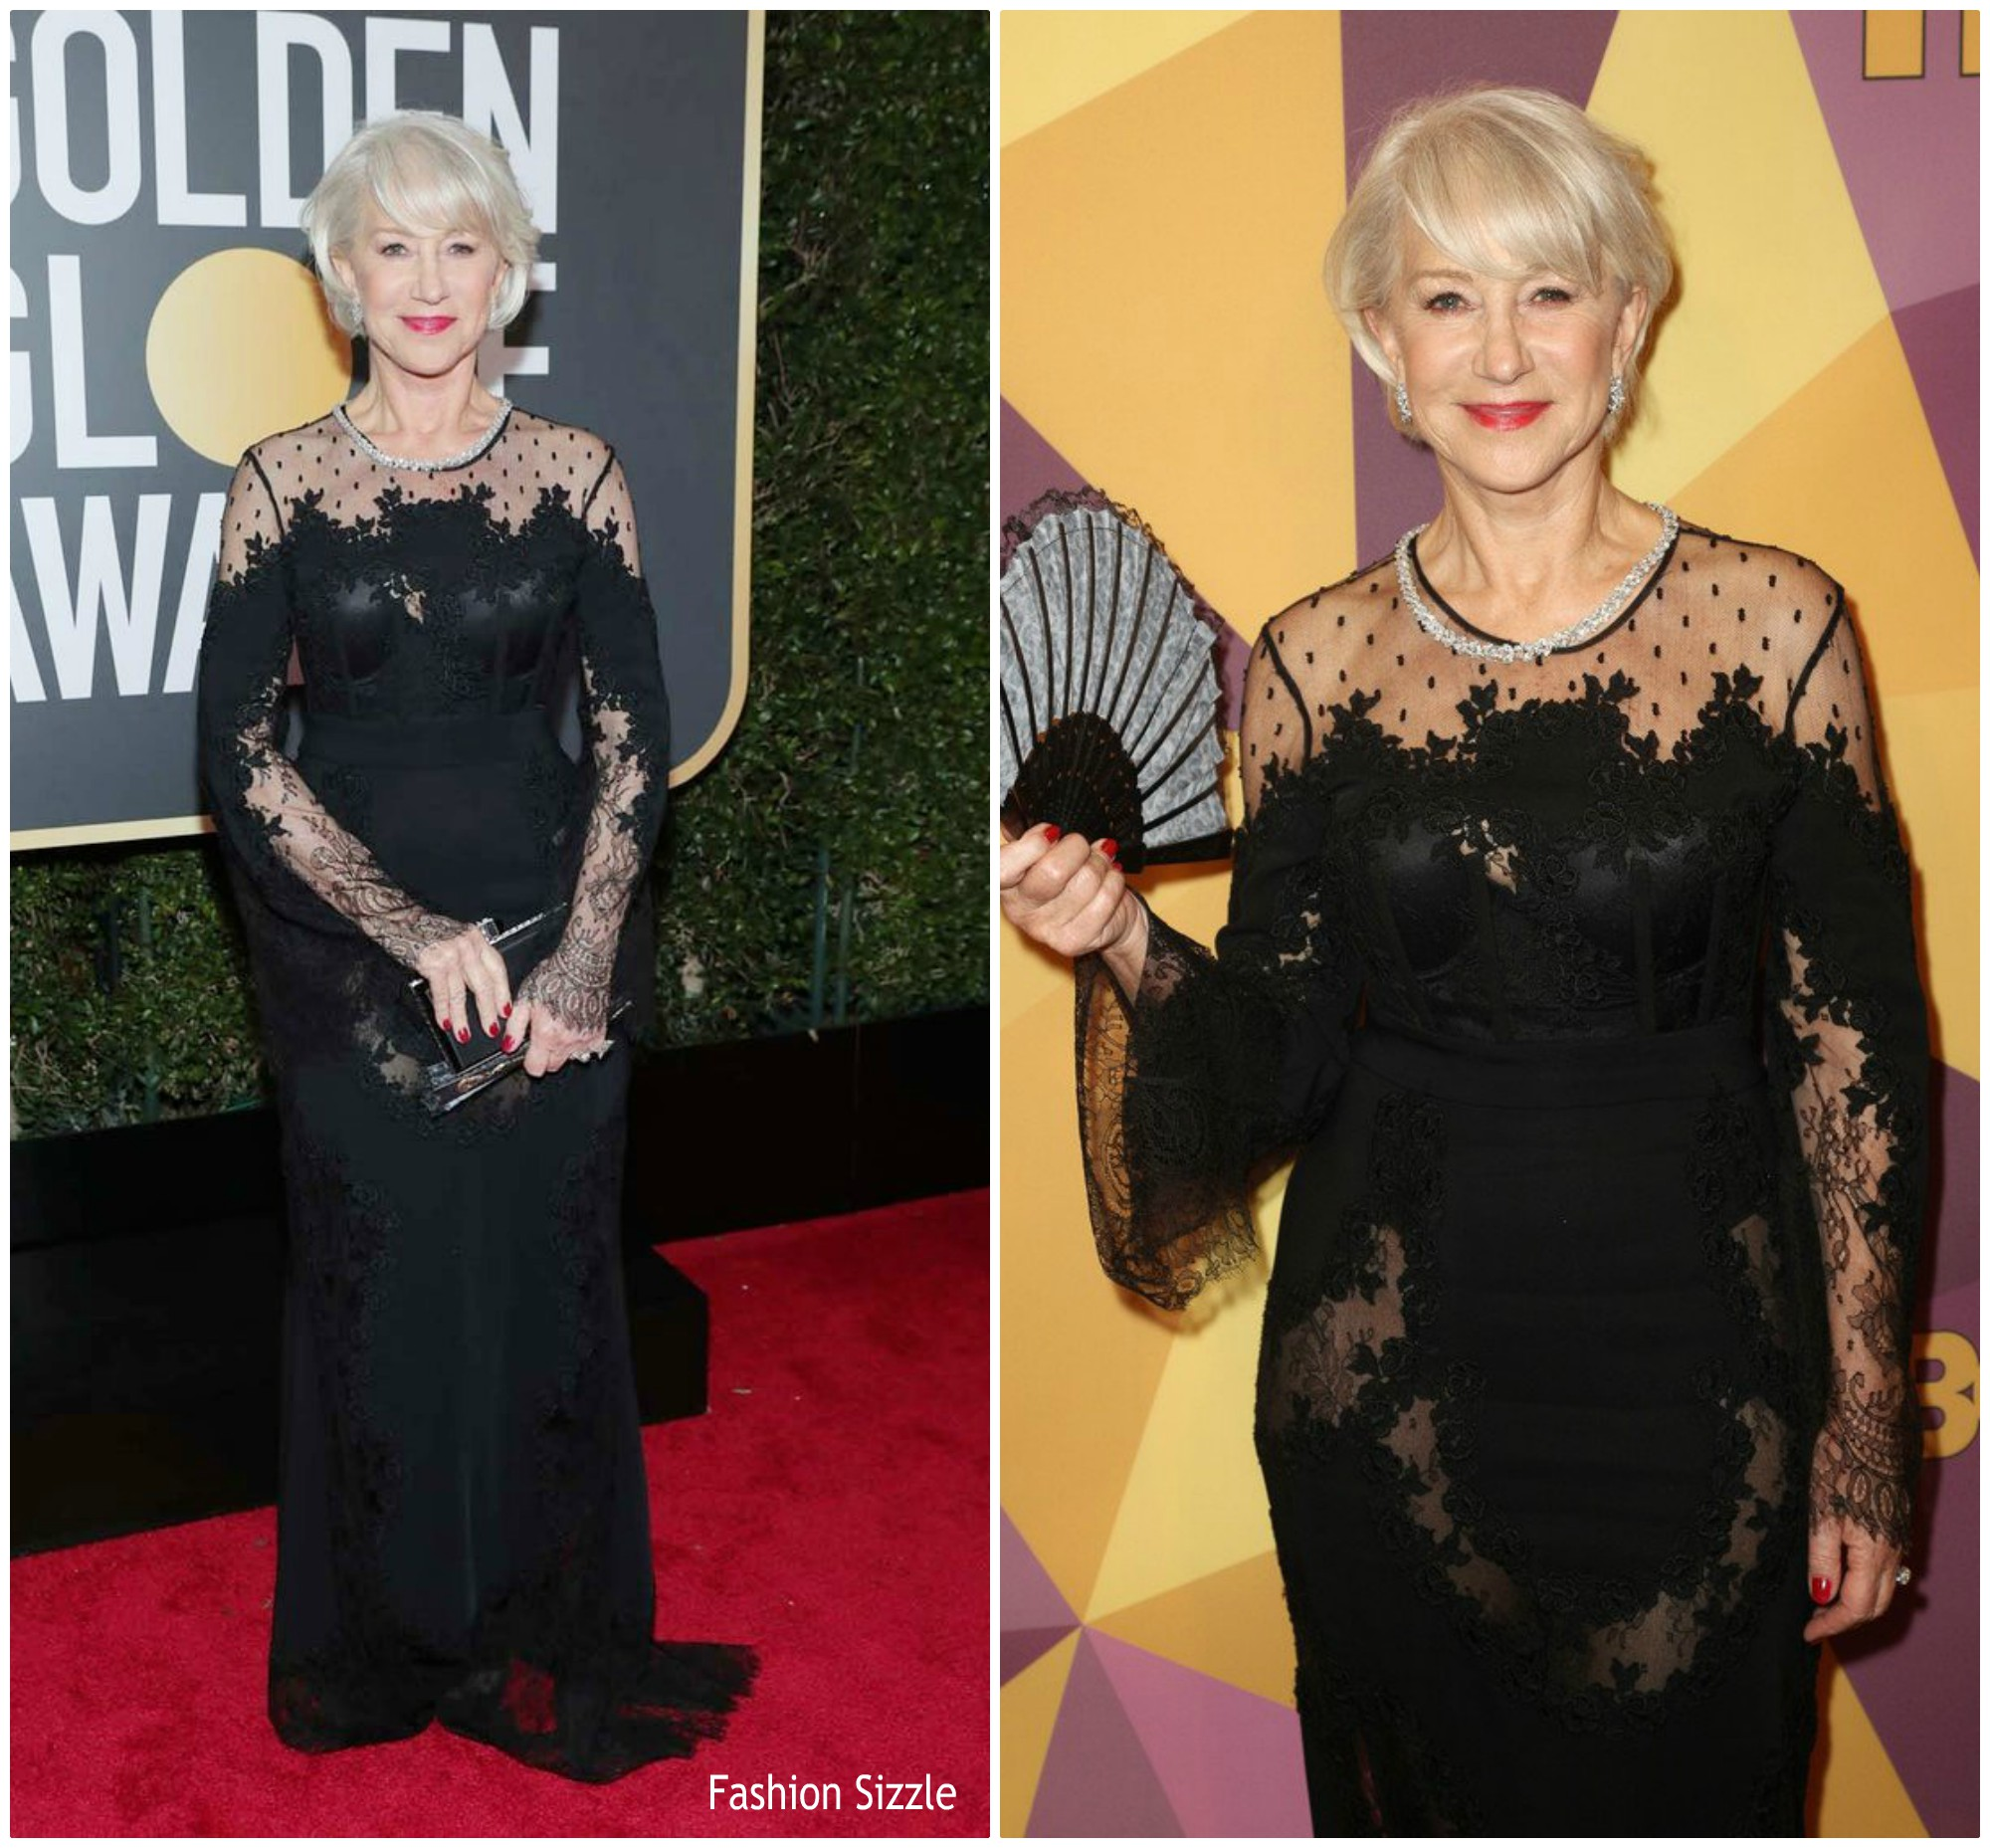 helen-mirren-in-zuhair-murad-2018-golden-globe-awards